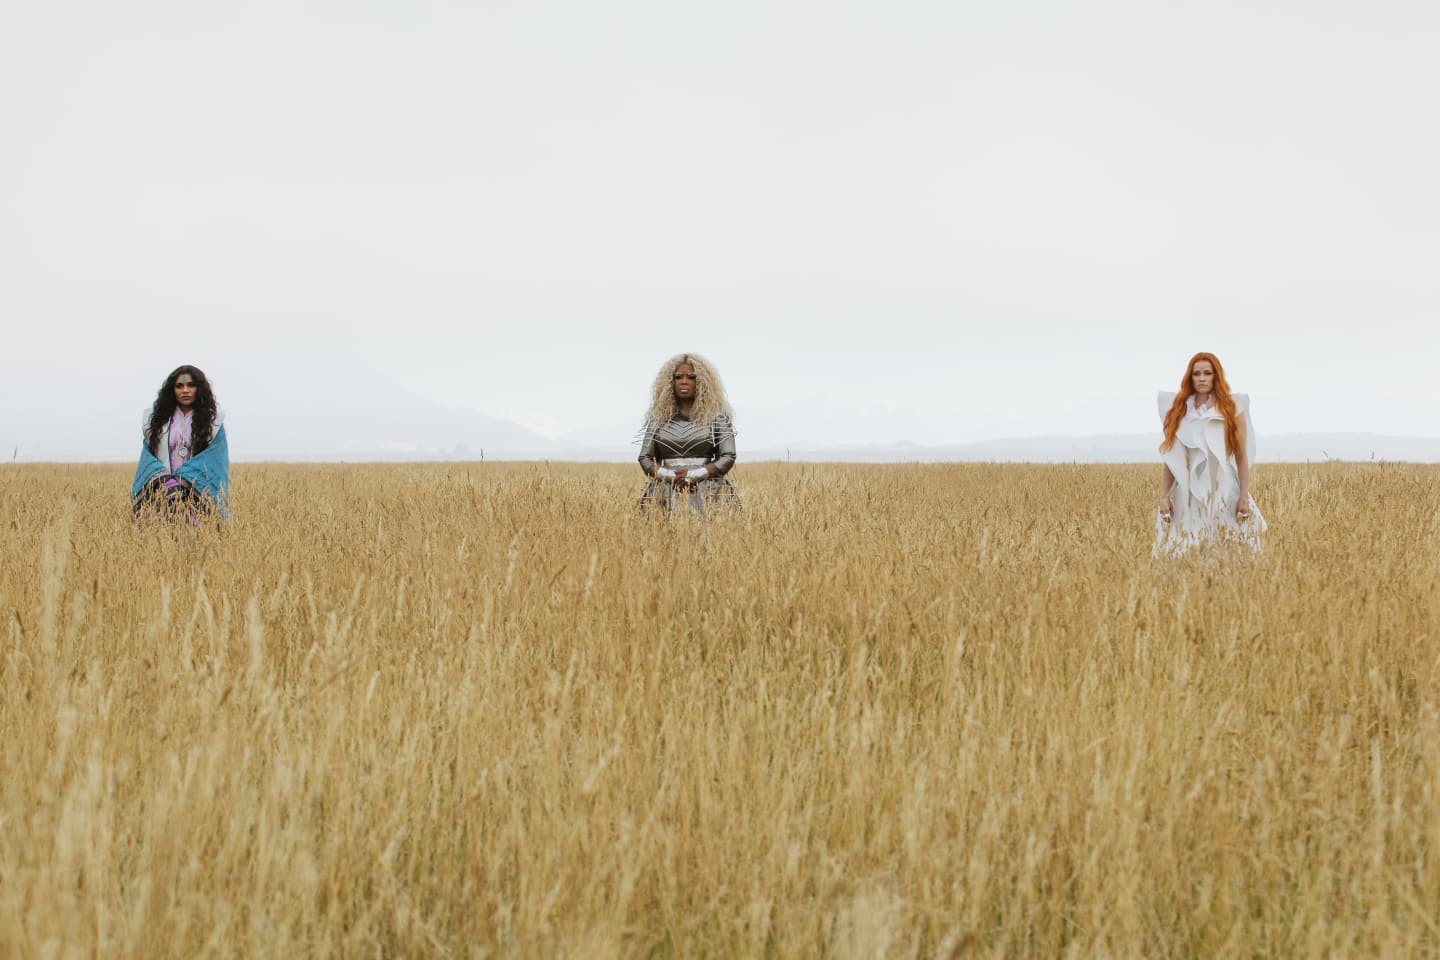 A Wrinkle in Time - Movie Trailer, Info, Images & More